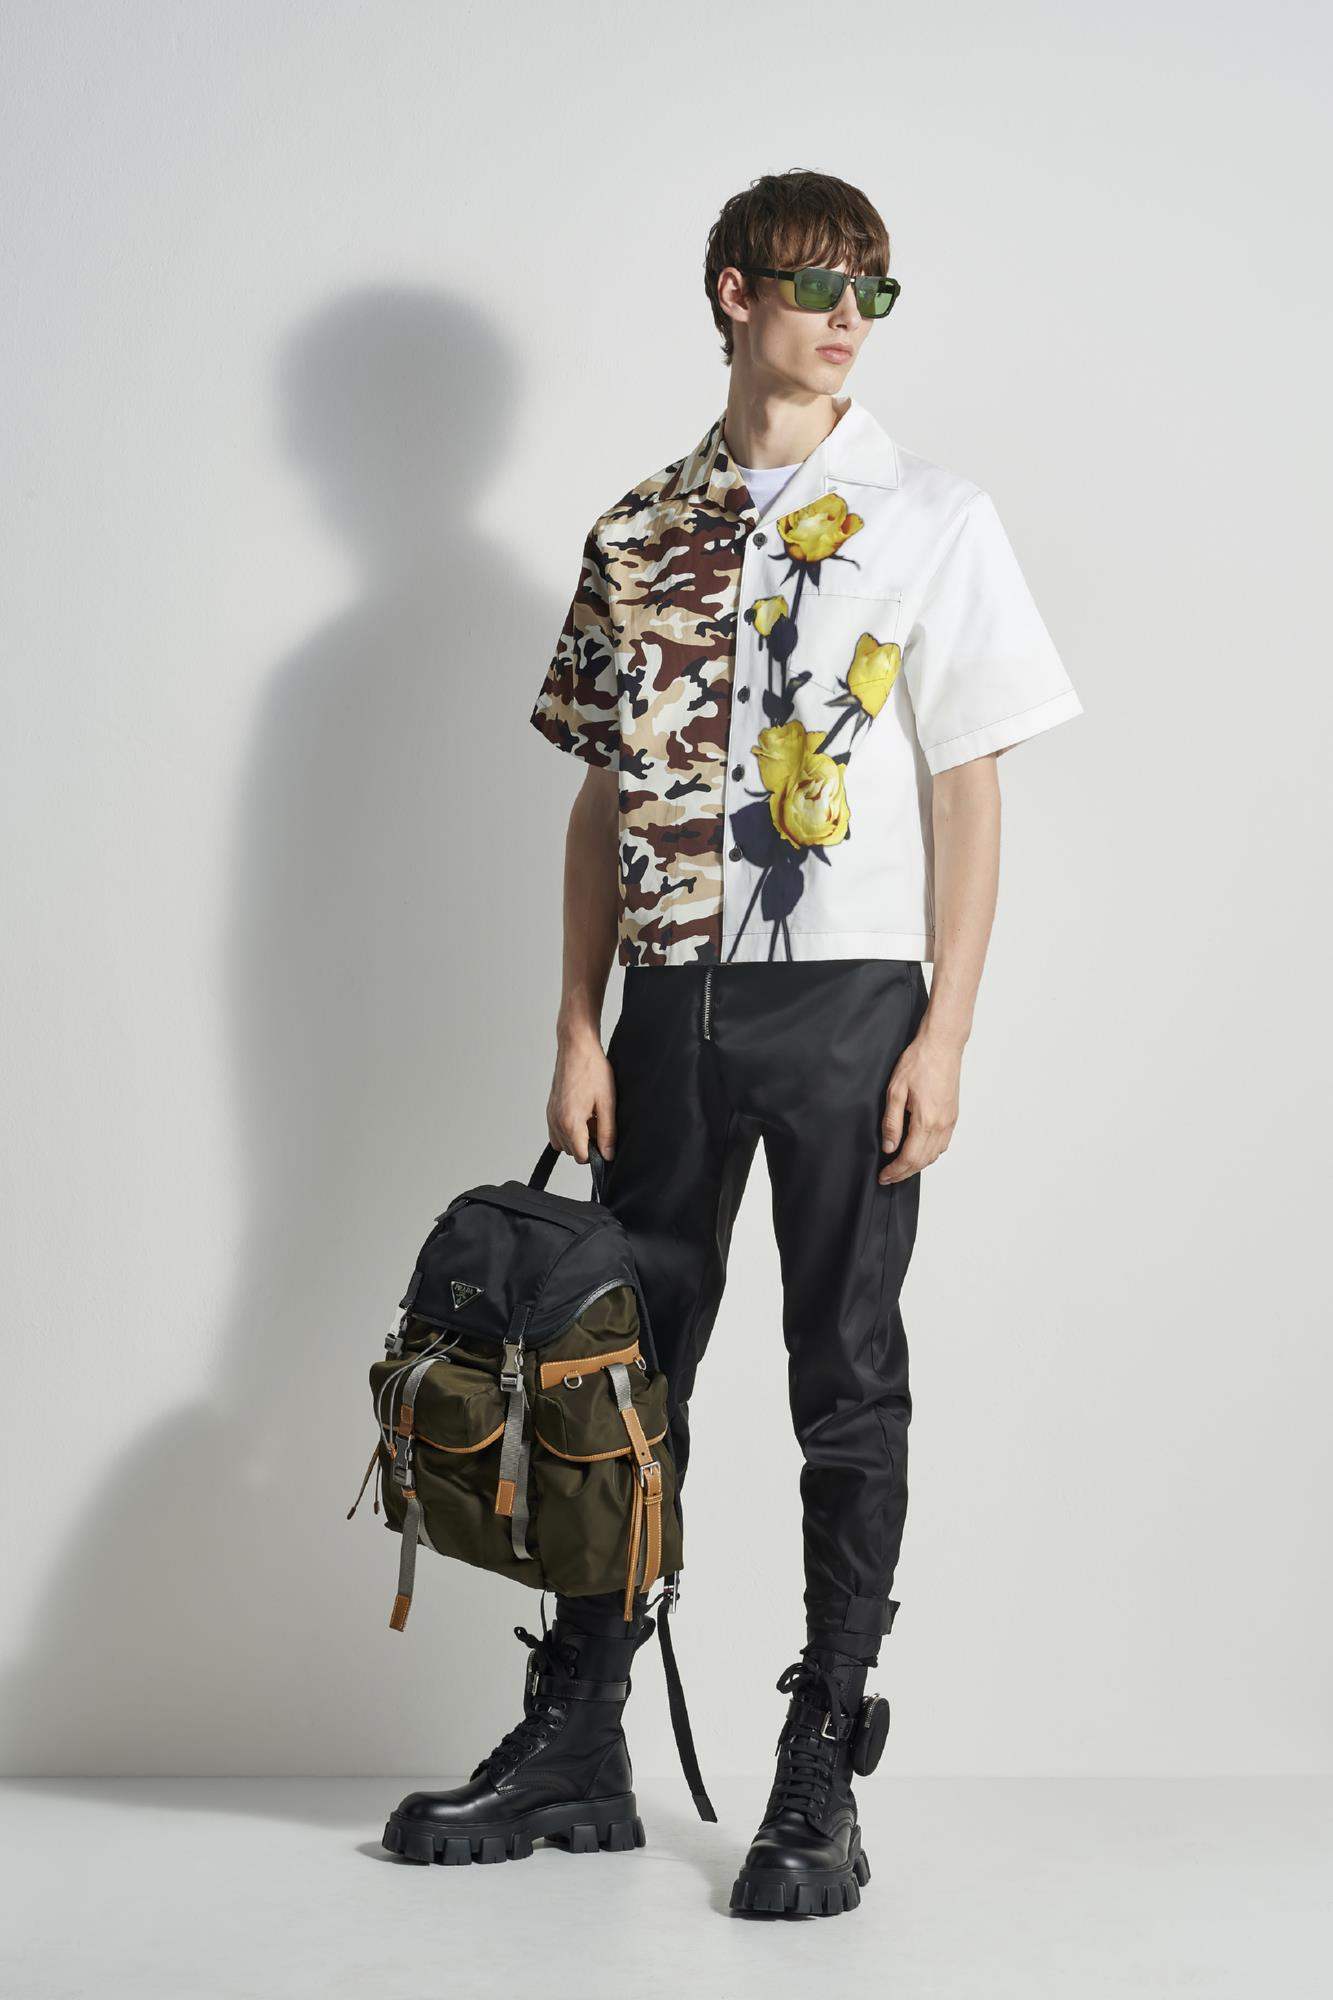 Prada Escape Holiday 2019 Selfridges Capsule Collection Pictures